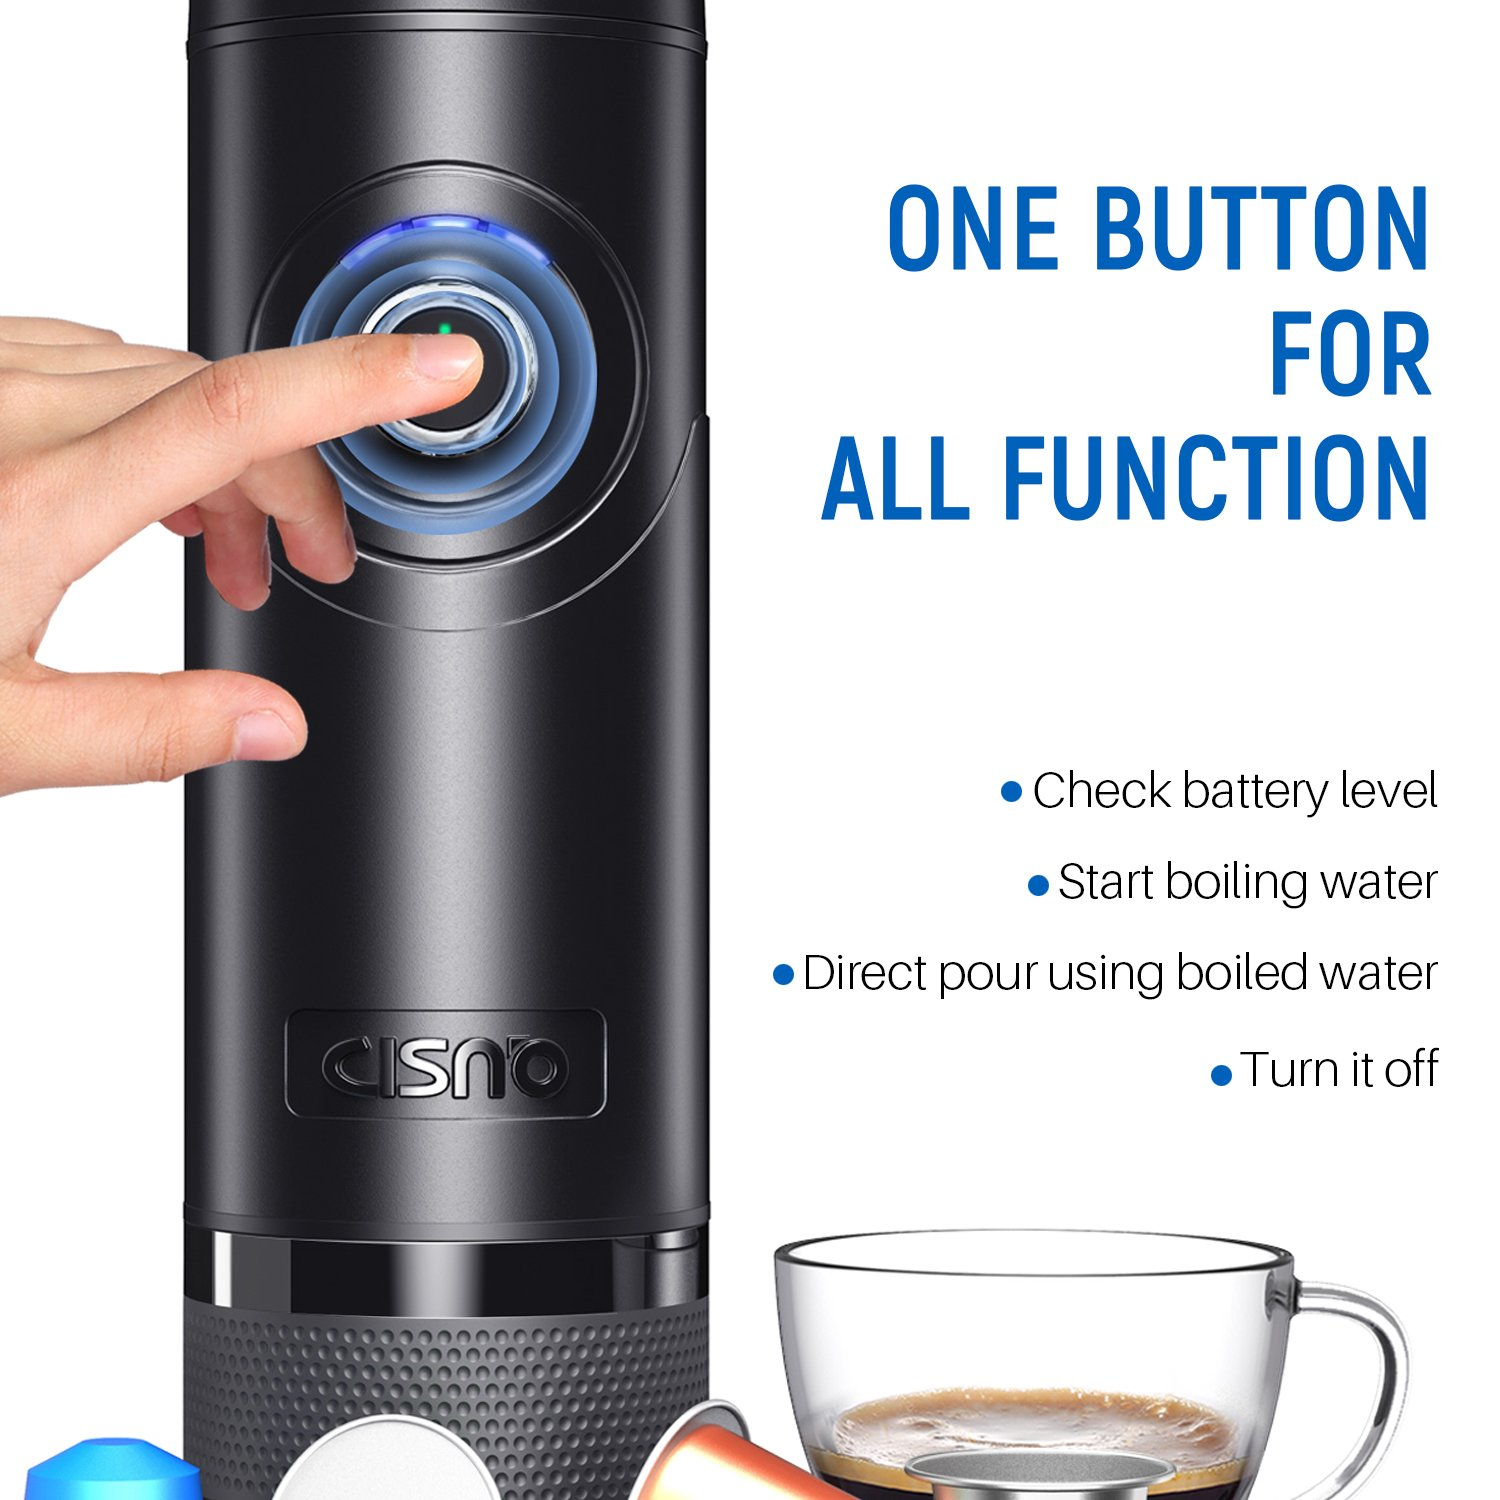 Compatible With Nespresso Capsules Good For Traveler Black BPA Free 15 Bars Pressure Boil Water Automatically Pump CISNO NCC-N01 Automated Portable Espresso Machine